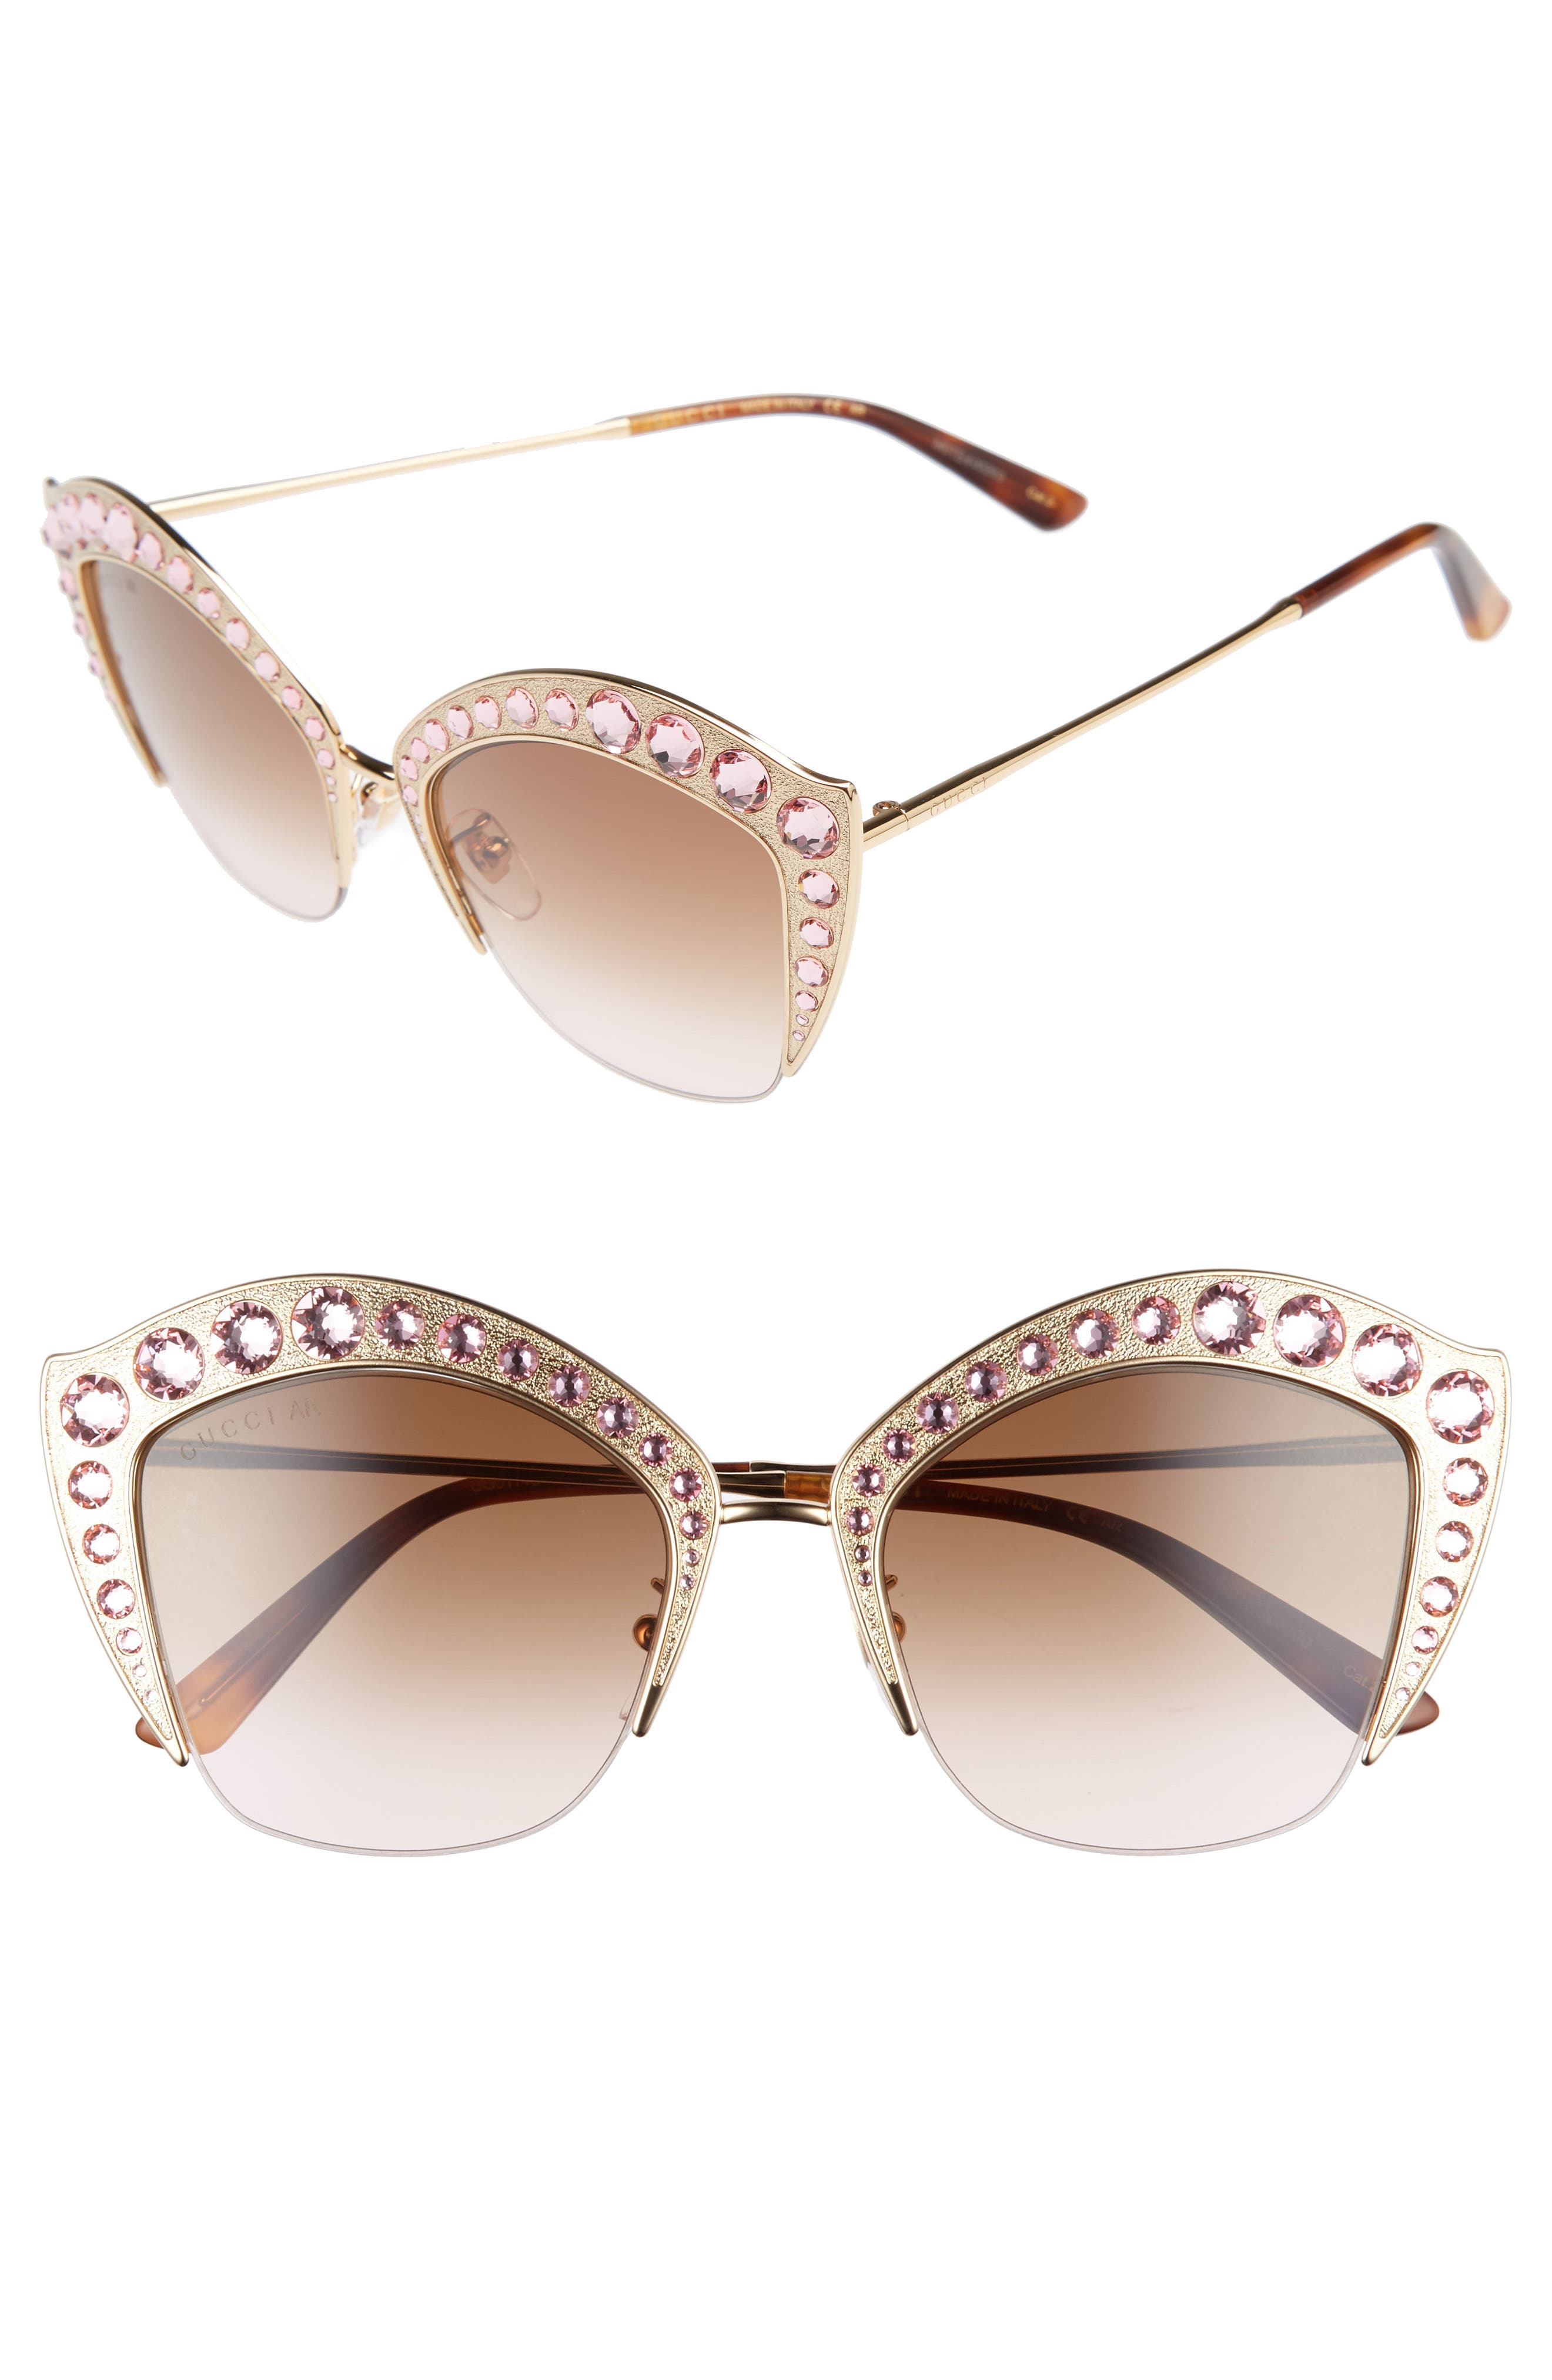 Alternate Image 1 Selected - Gucci 53mm Embellished Cat Eye Sunglasses